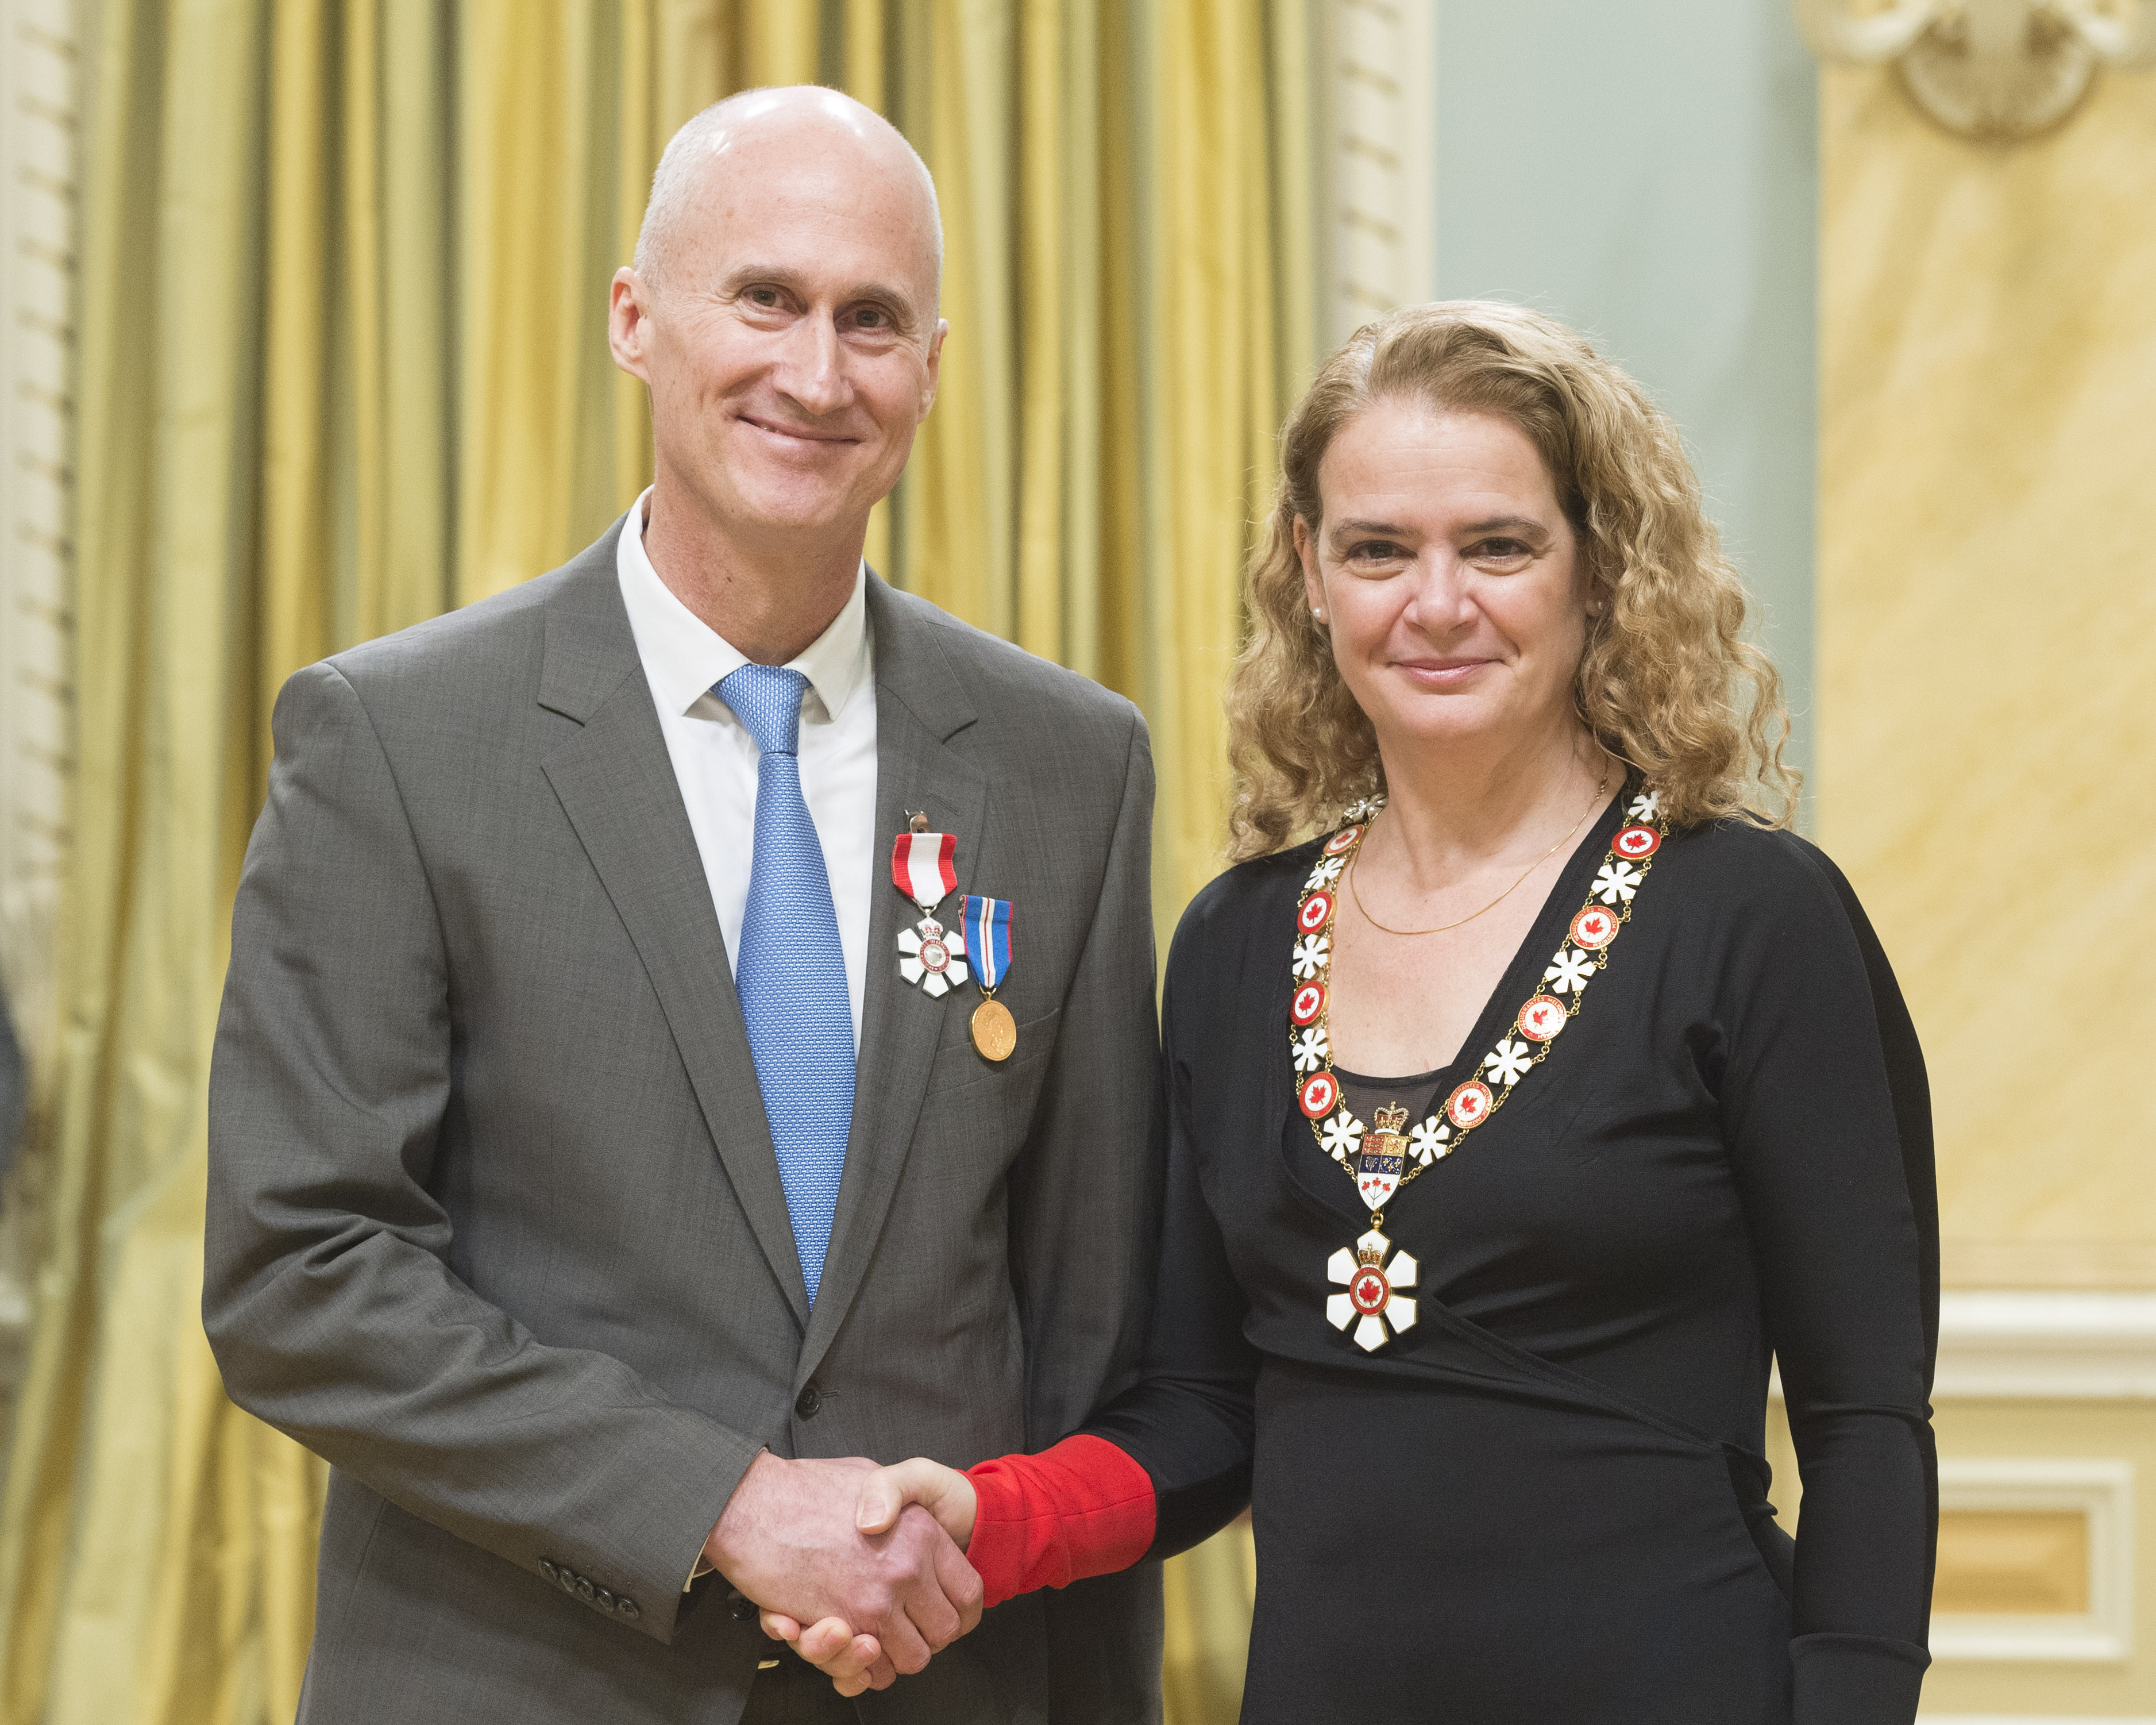 Evergreen CEO Geoff Cape is invested into the Order of Canada by the Right Honourable Julie Payette, Governor General of Canada. Image: Sgt Johanie Maheu, Rideau Hall © OSGG, 2018.